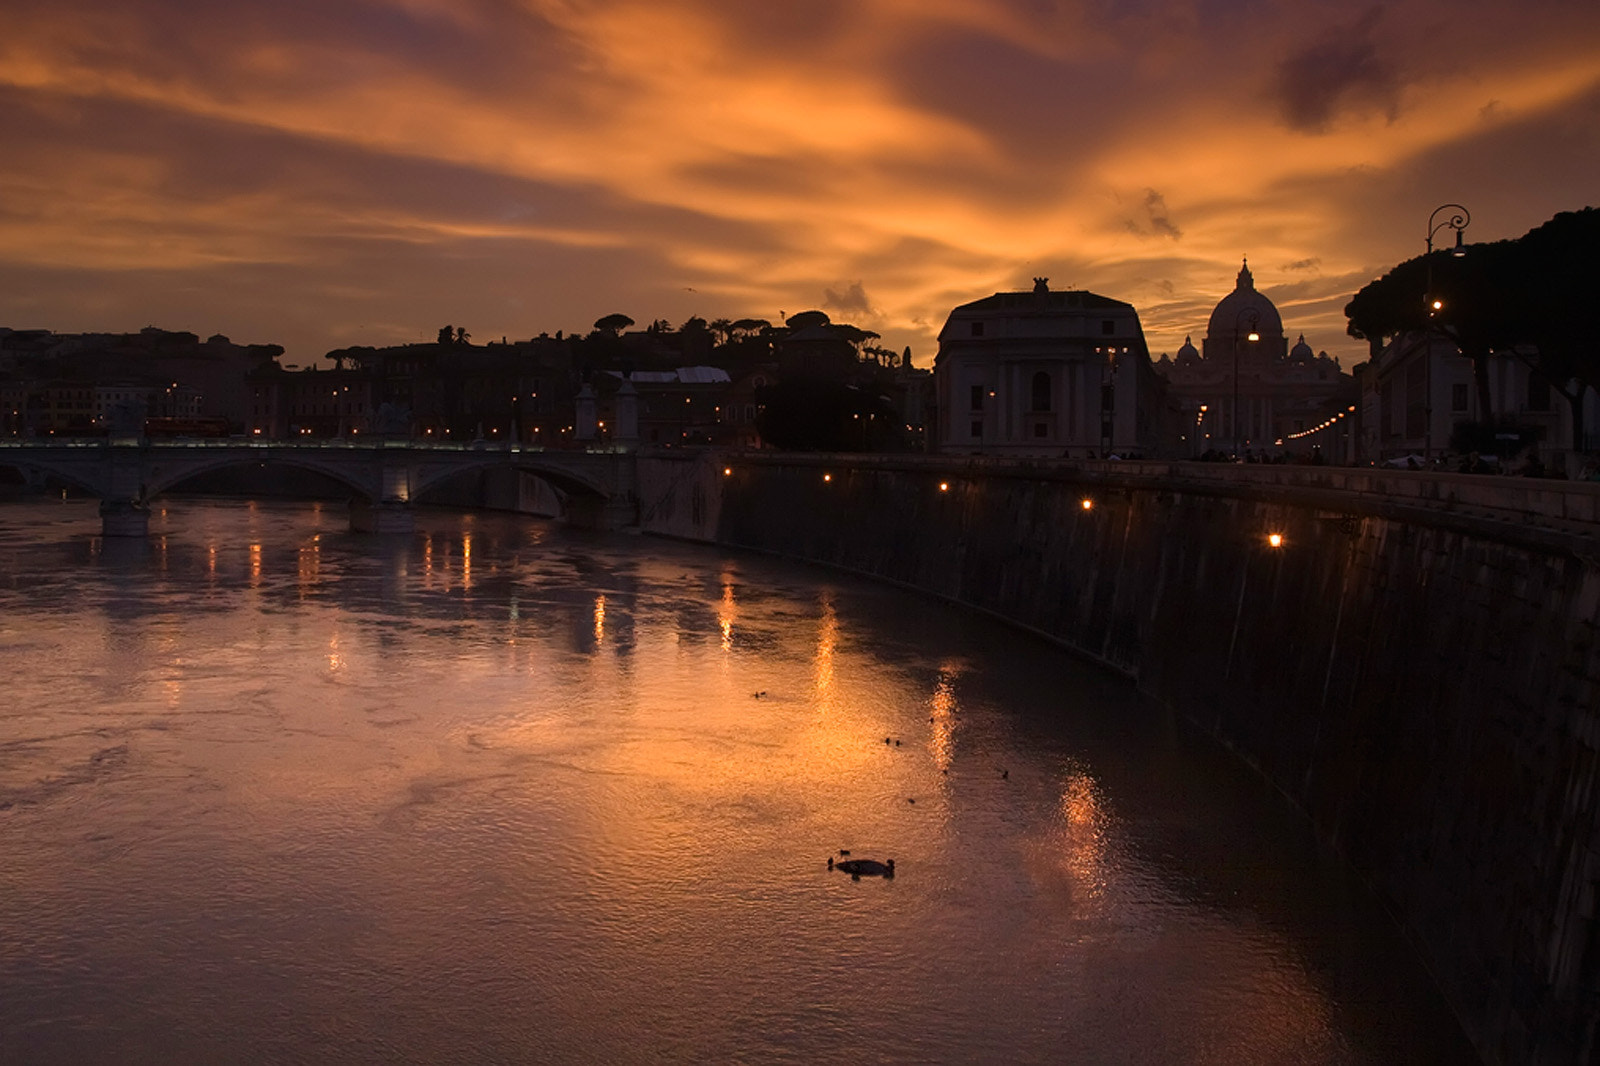 Photograph Sunset in Rome by José Antonio Sánchez on 500px